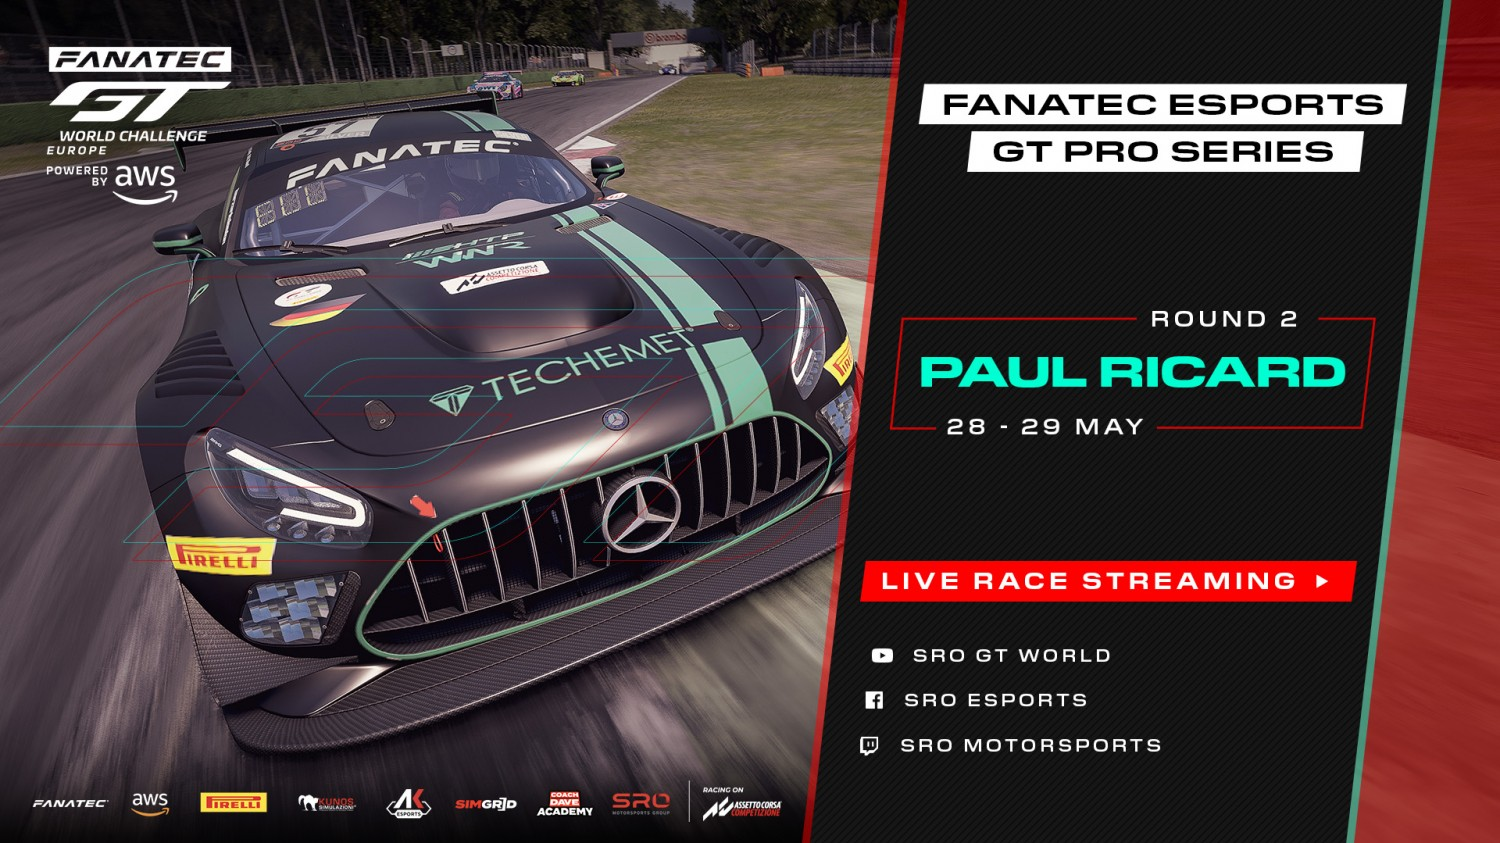 Circuit Paul Ricard set for R2 of Fanatec Esports GT Pro Series